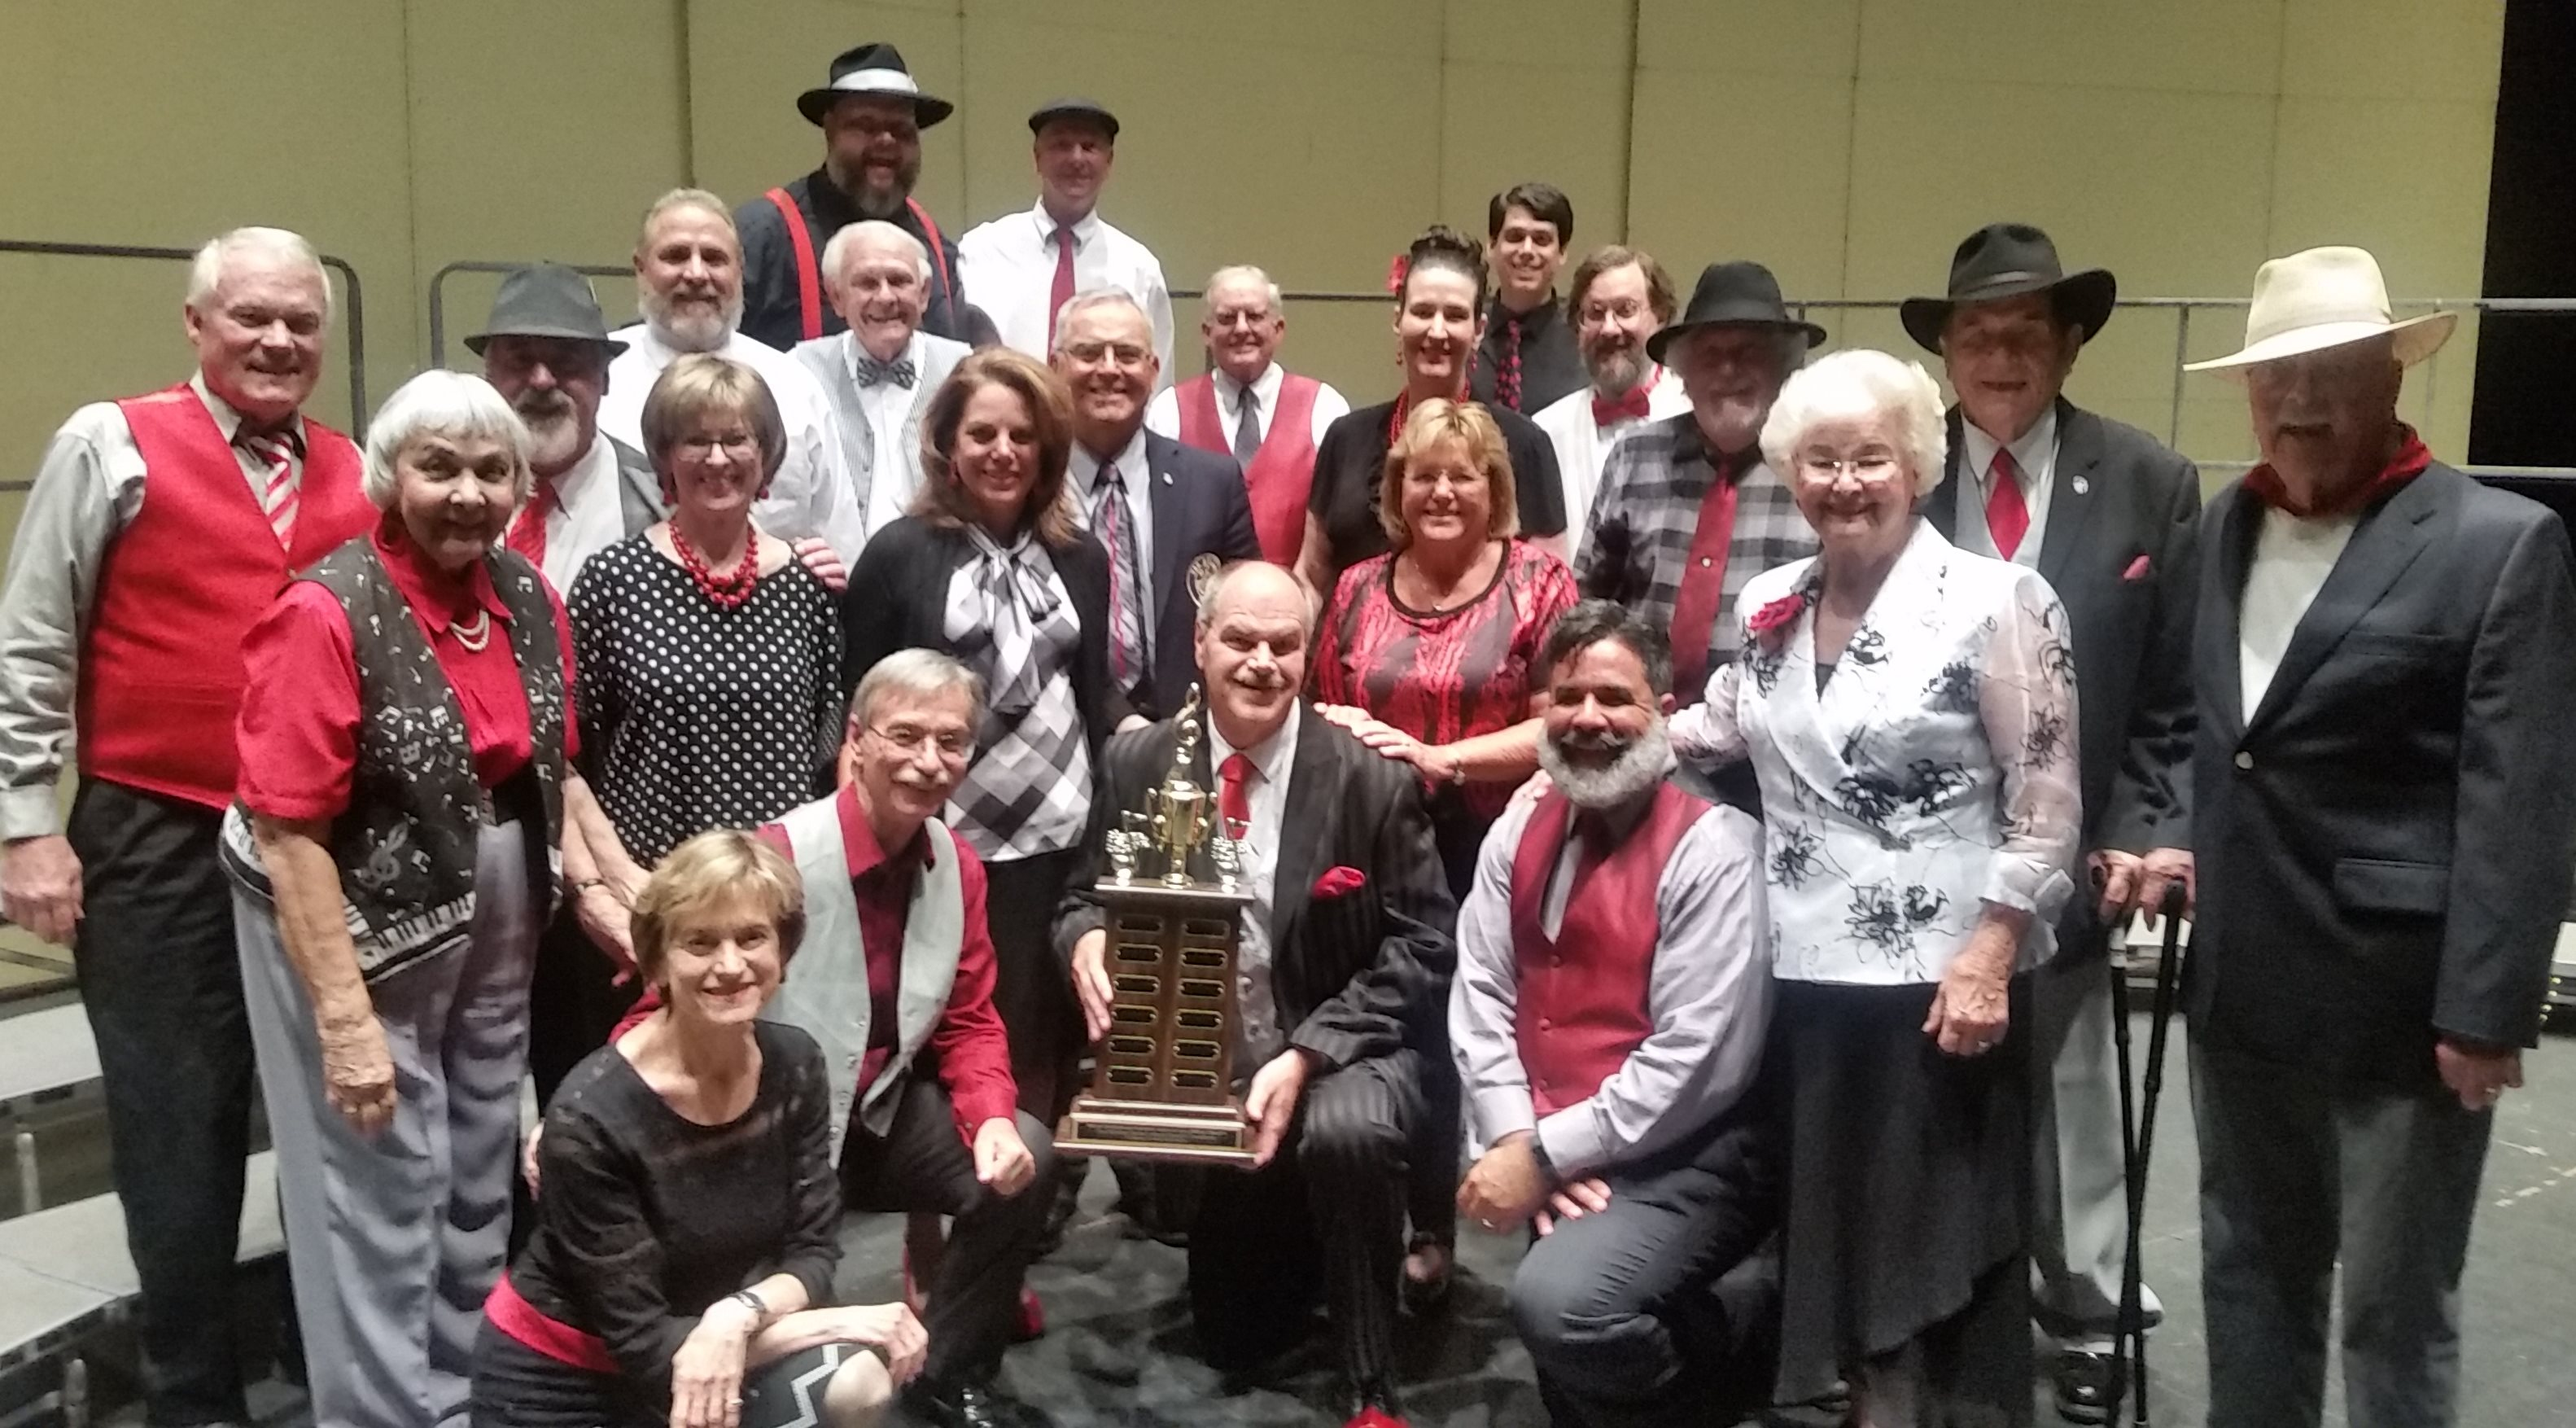 2018 MBHA Champions - The Stockton Portsmen Chorus